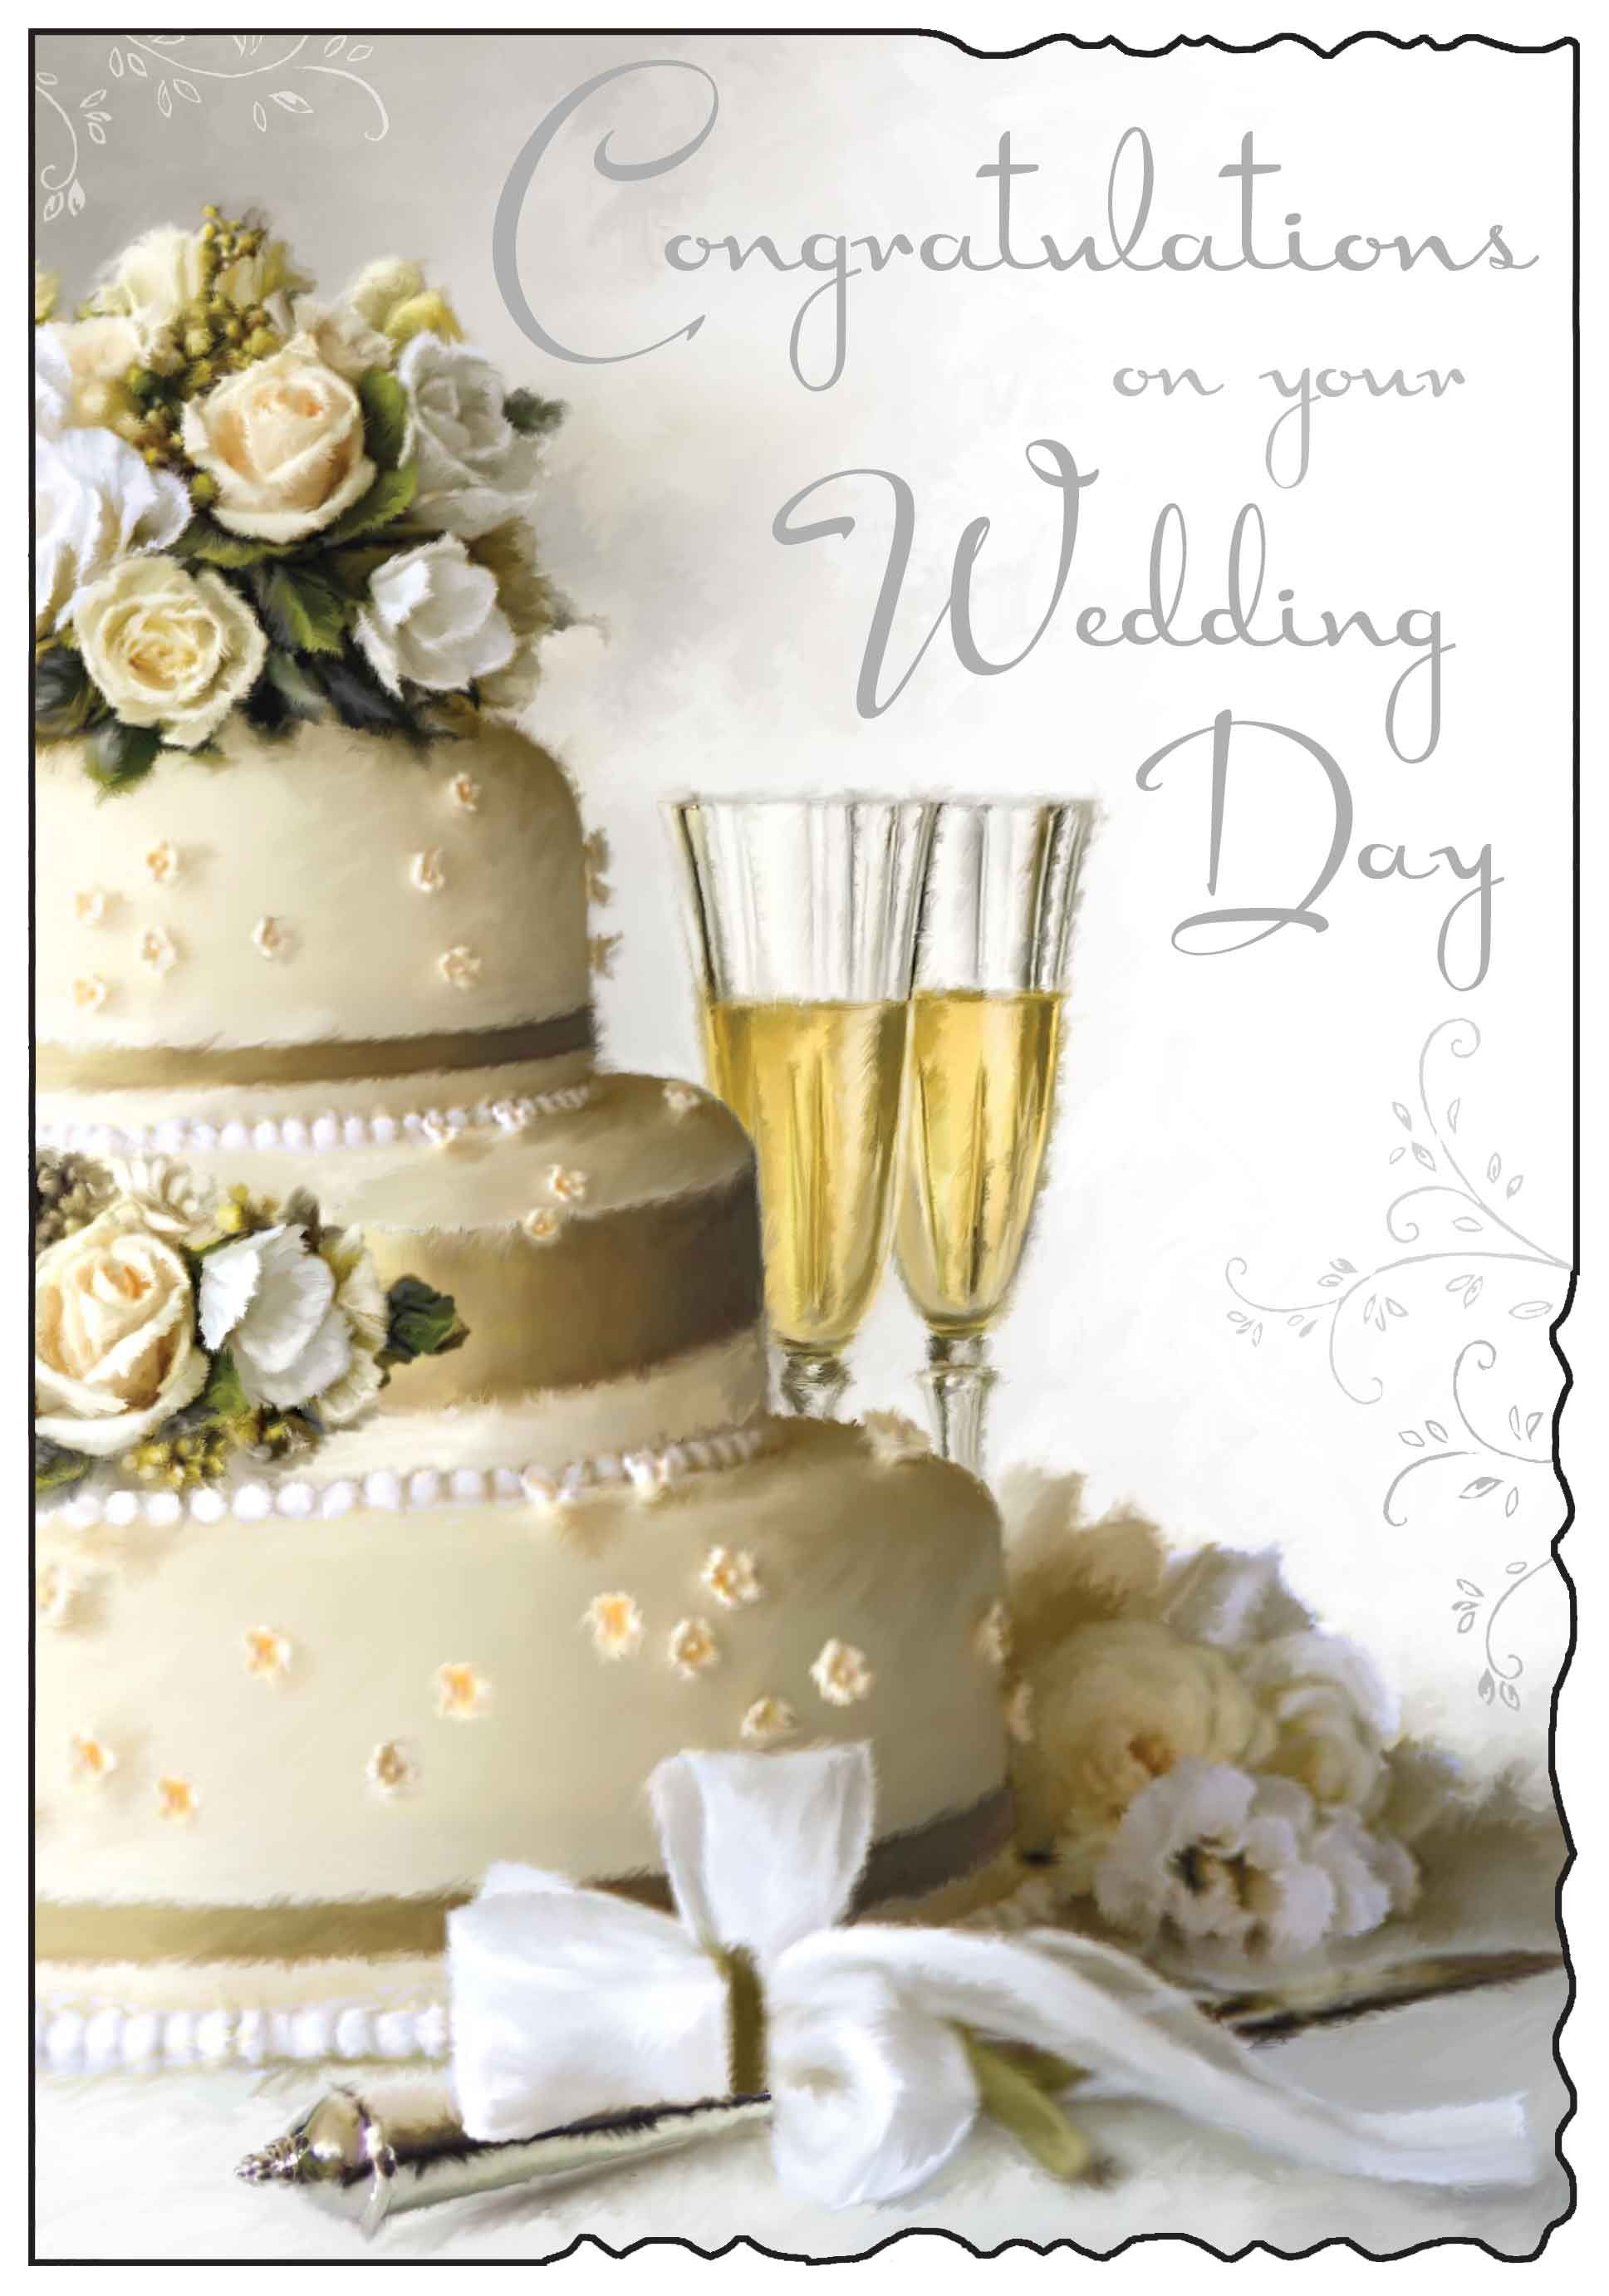 Congratulations on your wedding day card. http//www